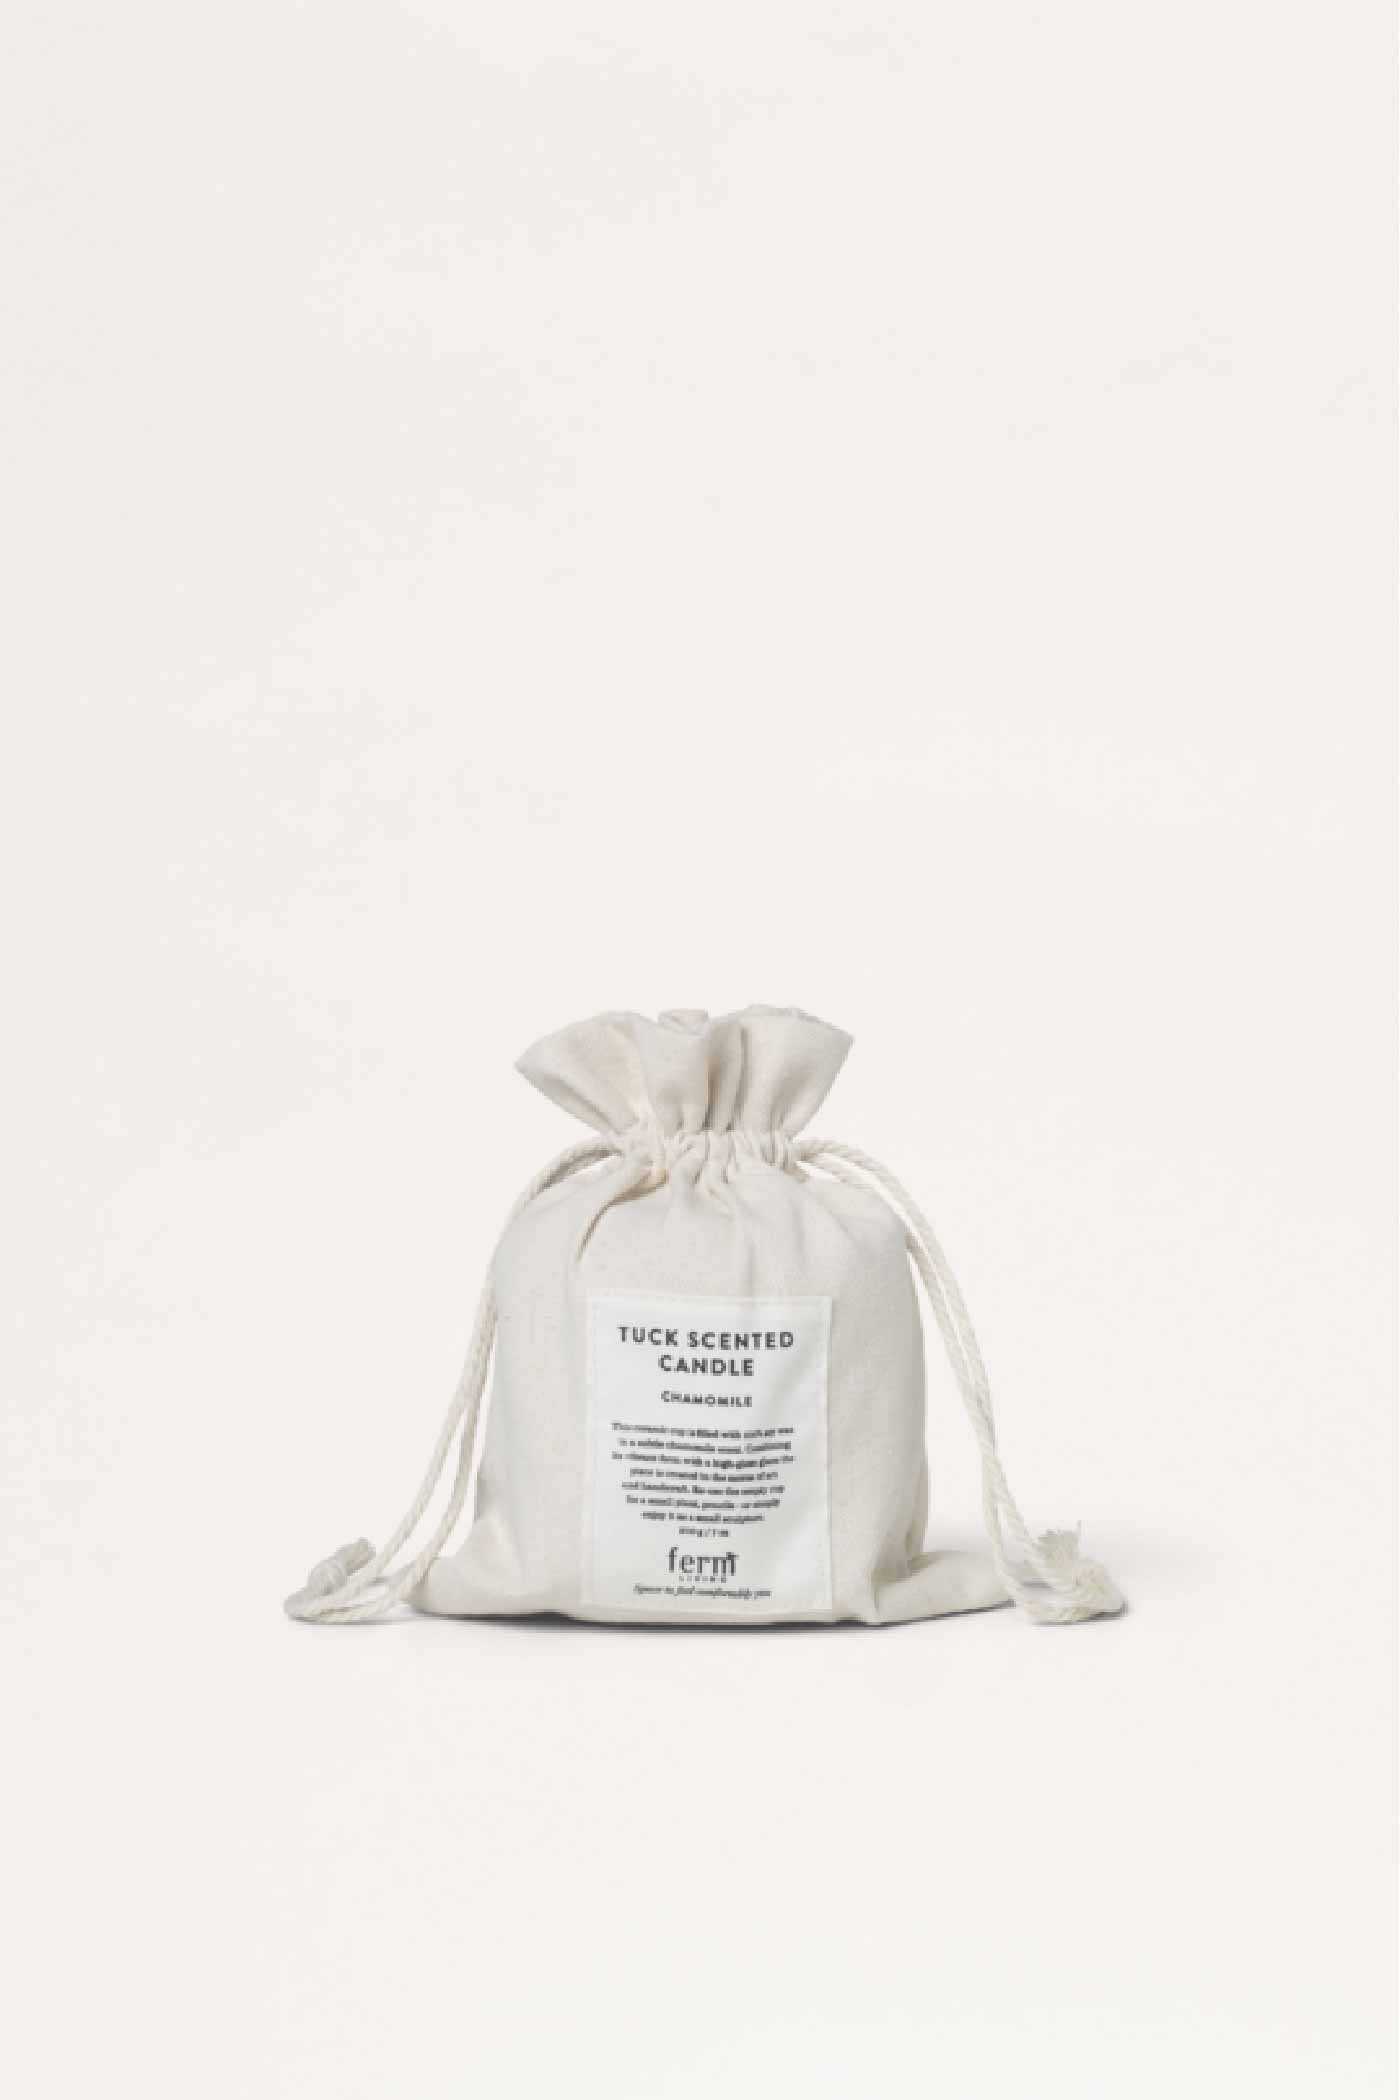 Ferm Living Tuck Scented Candle